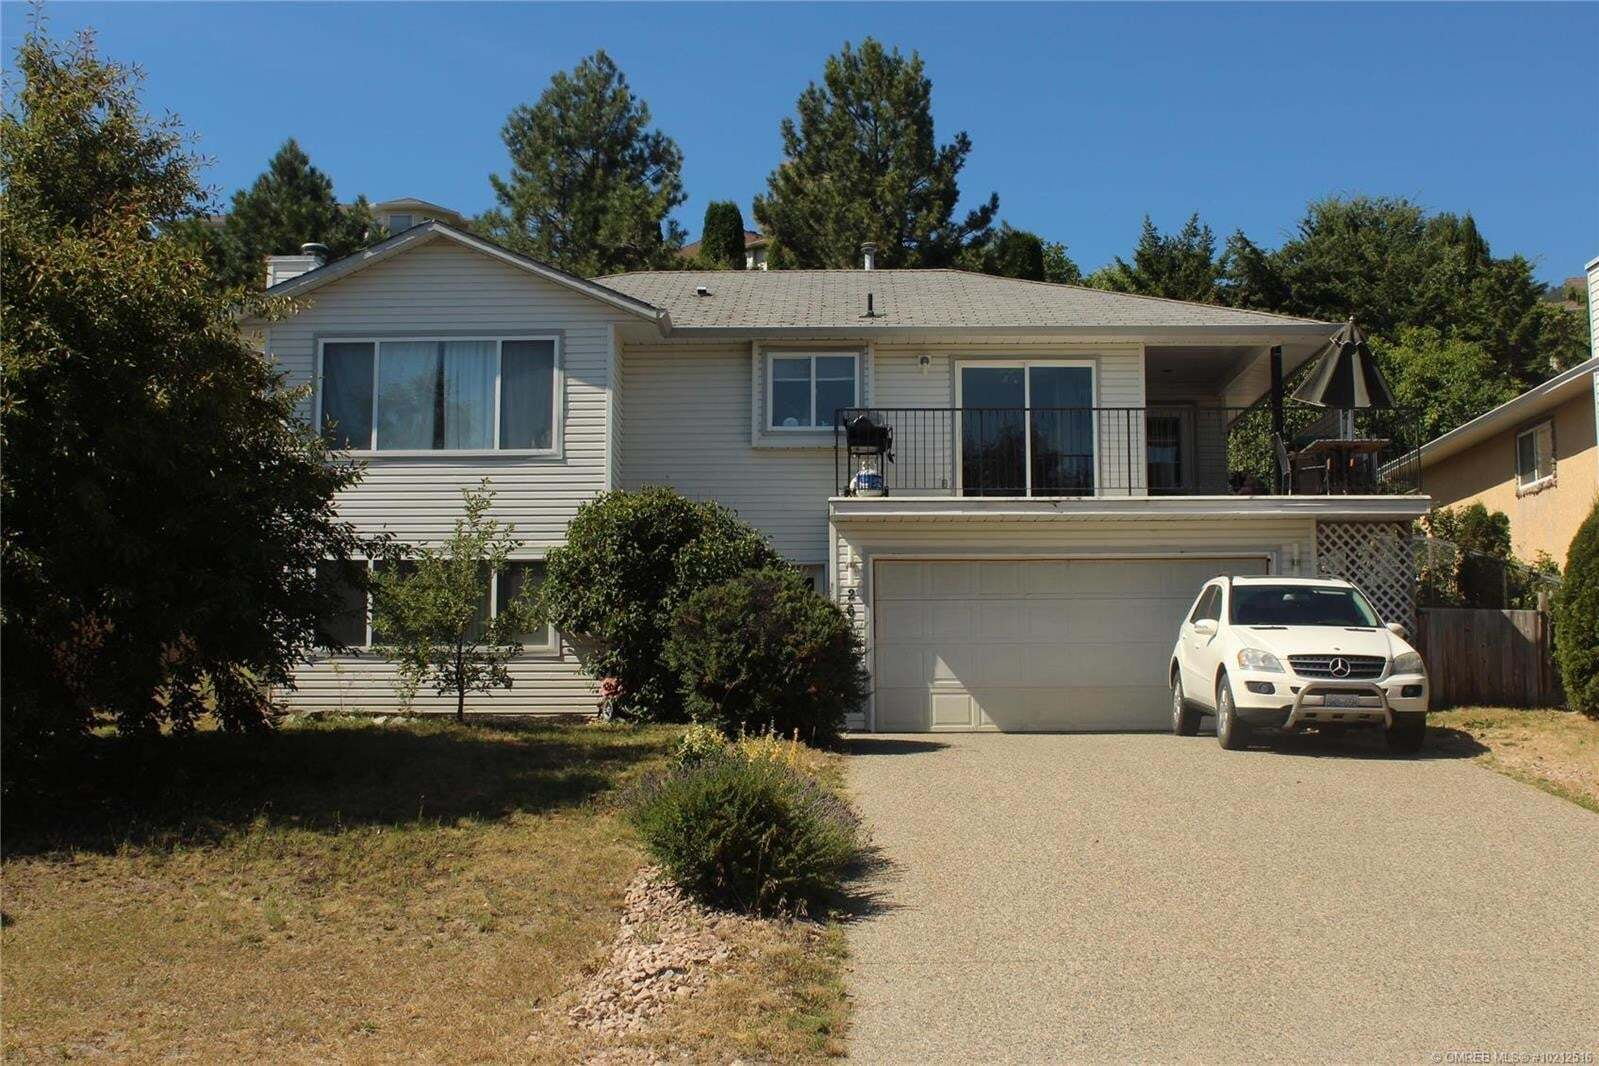 House for sale at 2632 Wild Horse Dr West Kelowna British Columbia - MLS: 10212516